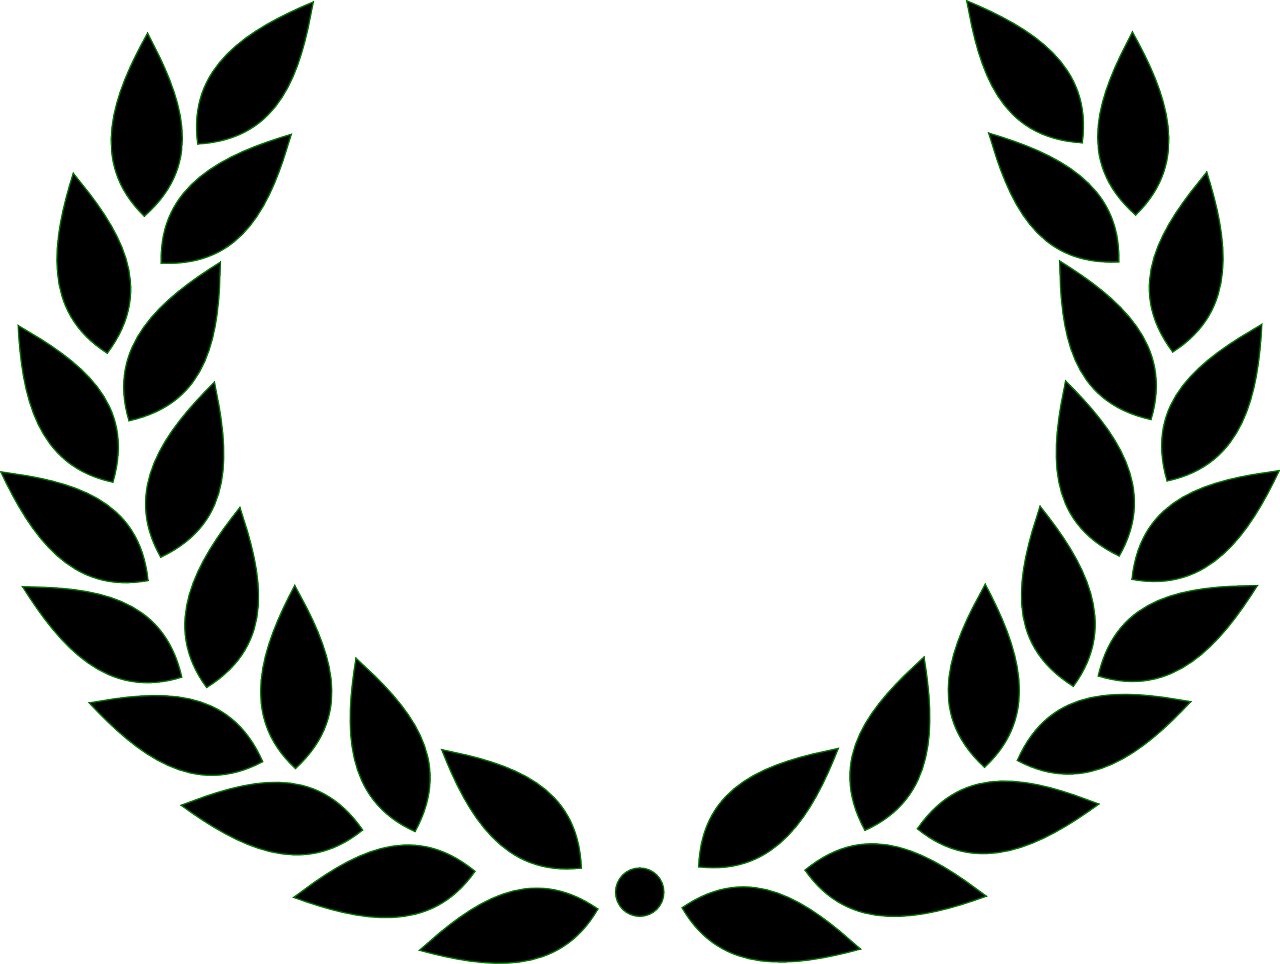 Diamond reef and crown clipart picture royalty free stock Top 10 Laurel Wreath Design - Vector Art Library picture royalty free stock